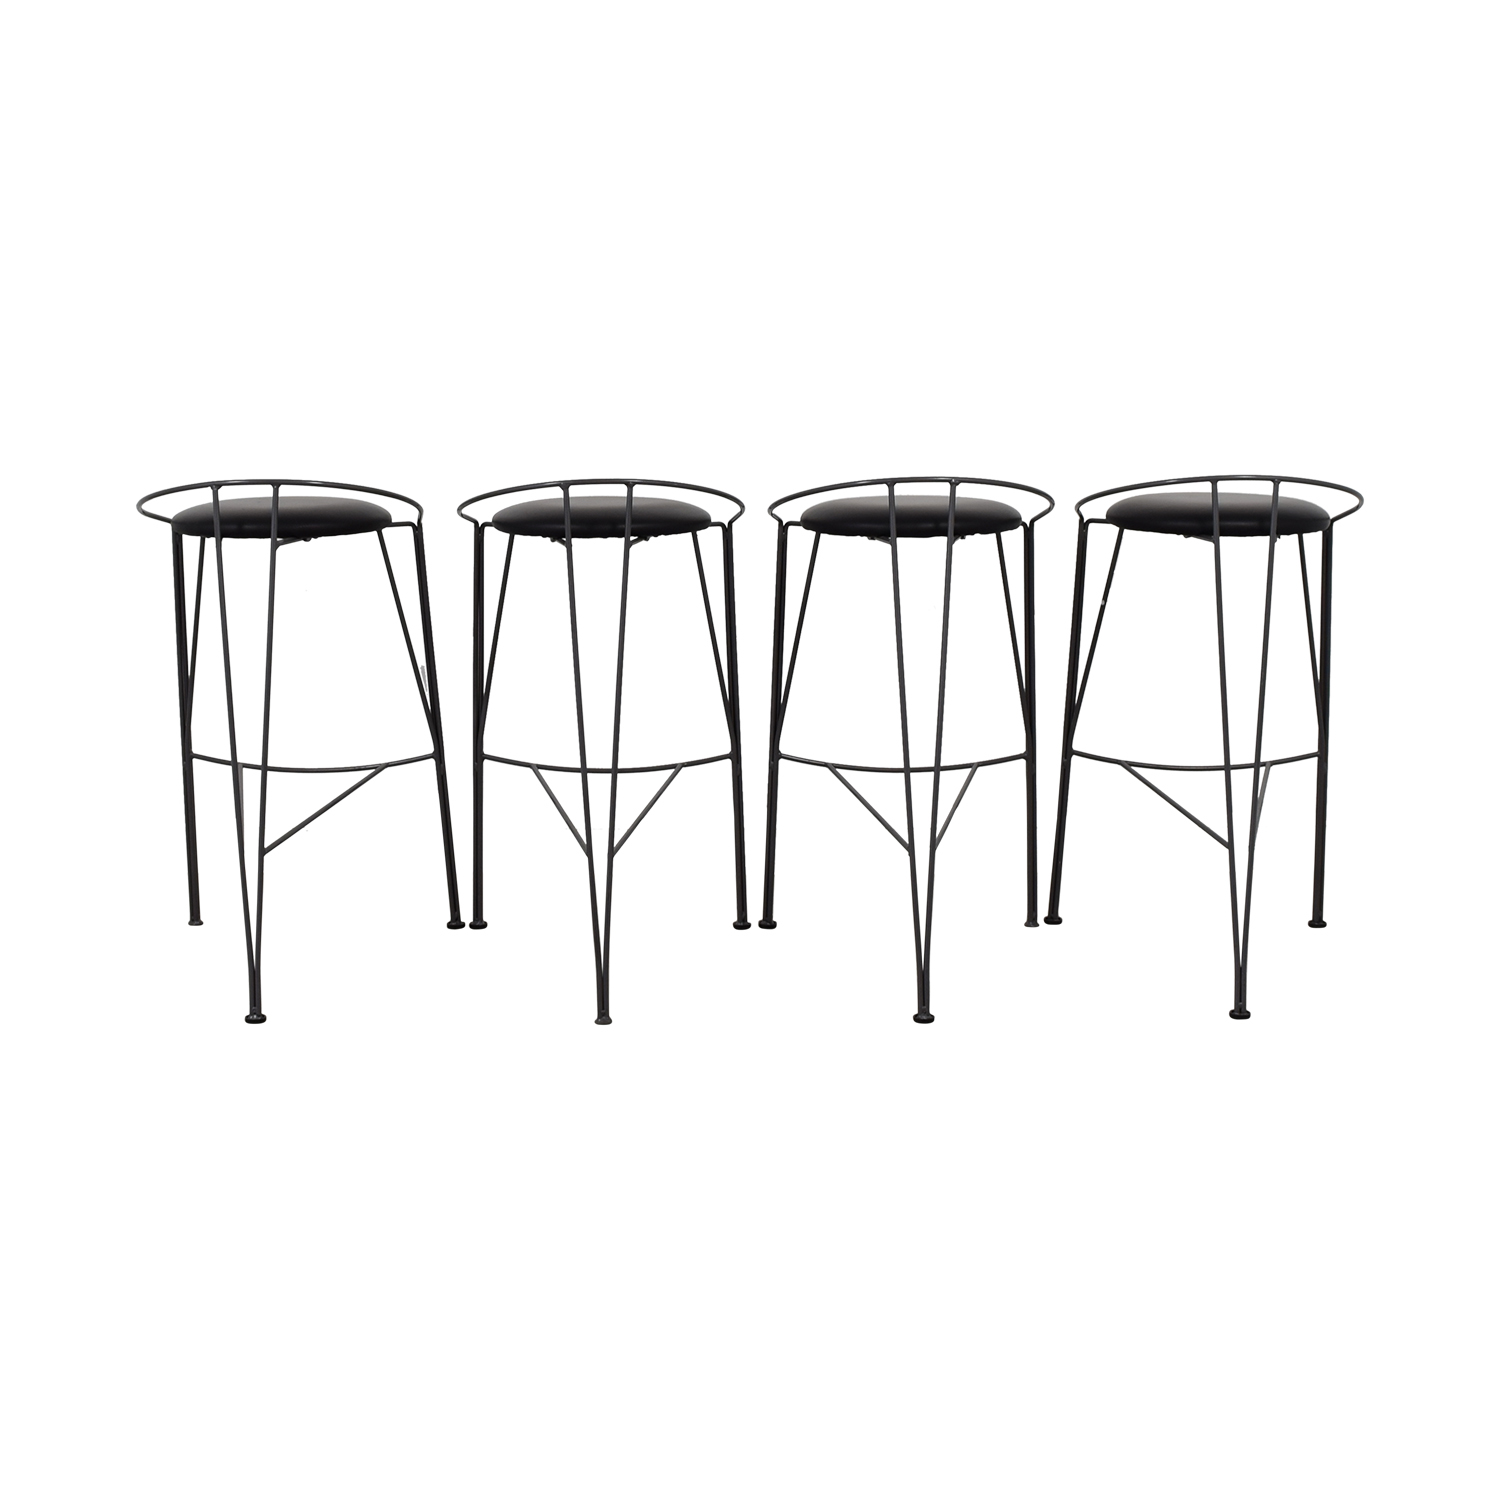 Astounding 90 Off Black Bar Stools Chairs Ncnpc Chair Design For Home Ncnpcorg